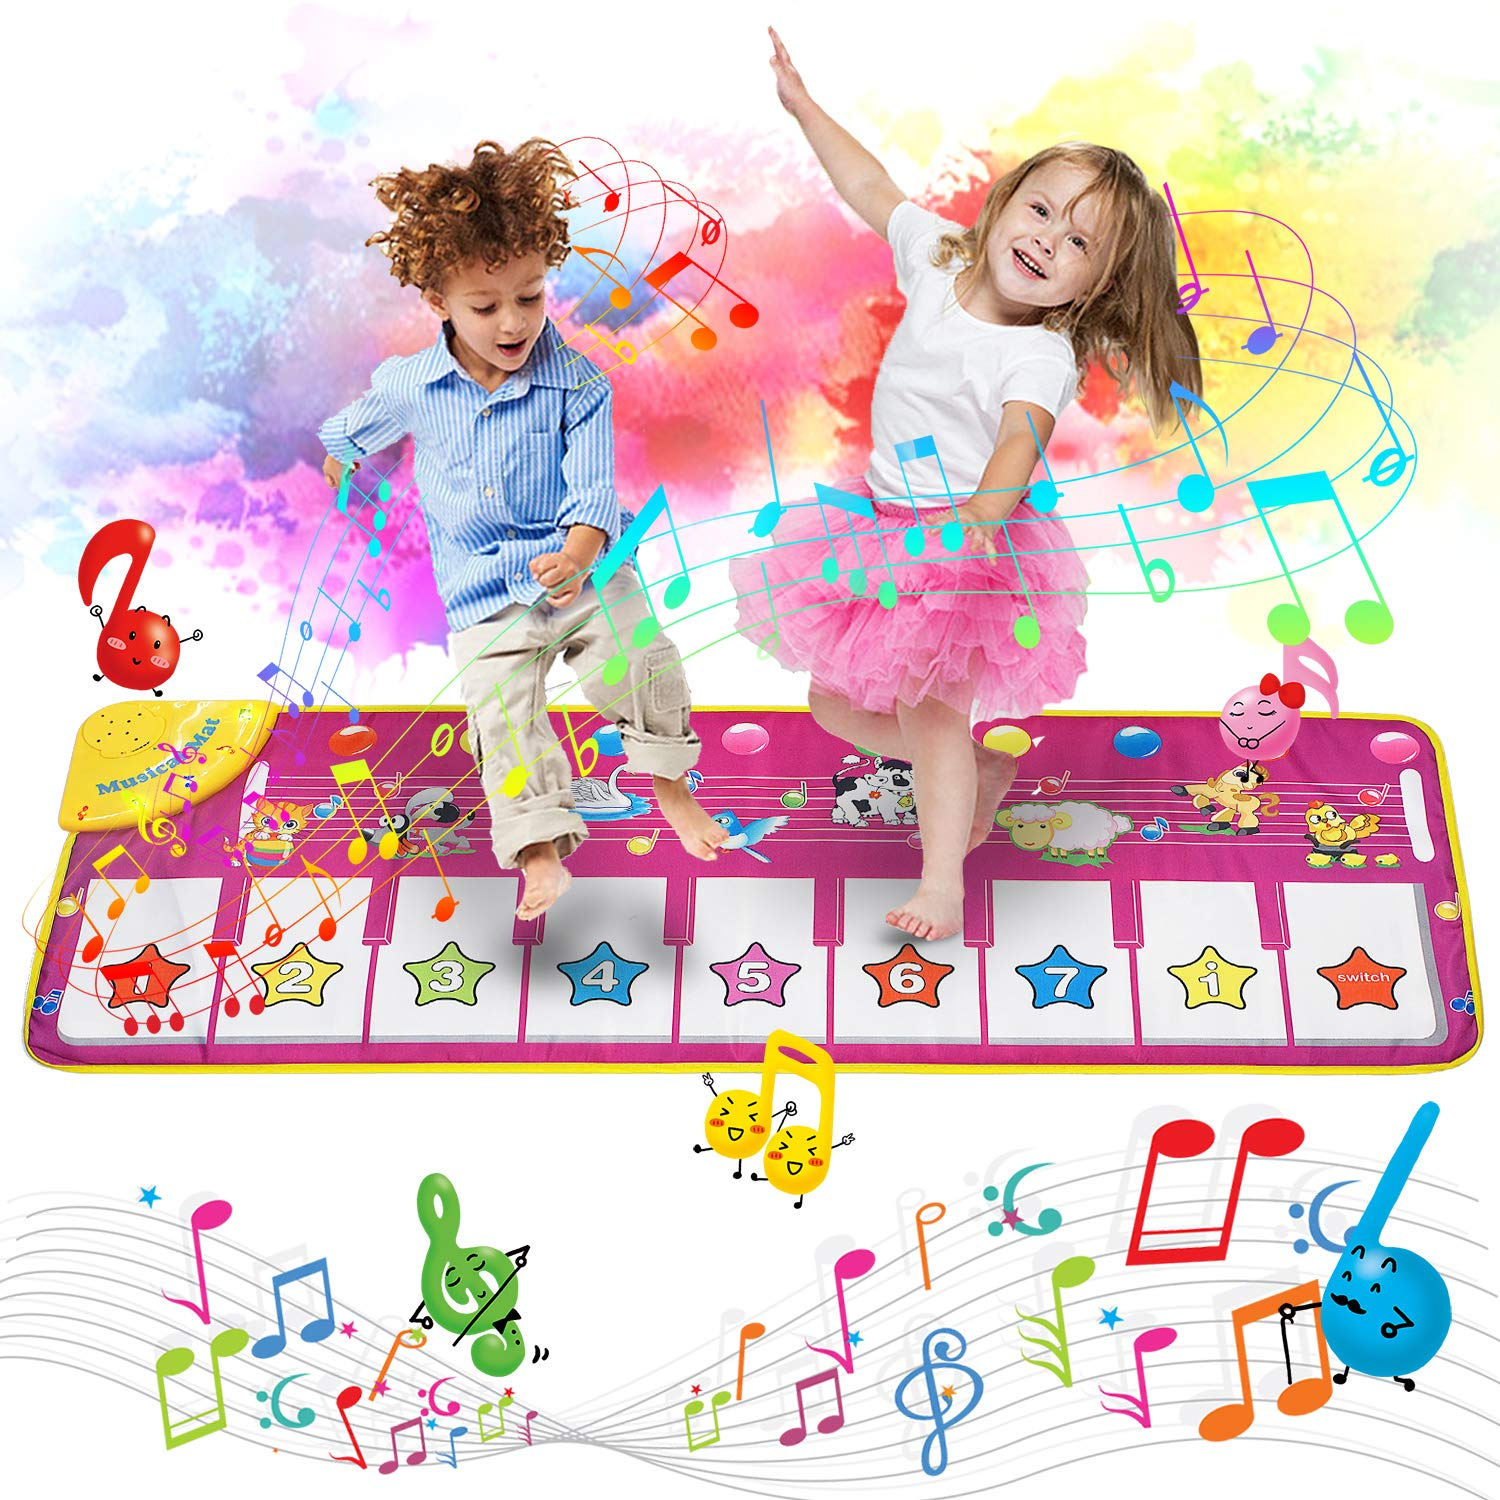 Music Piano Mat, Musical Mat Keyboard Playmat Electronic Music Carpet Touch Play Blanket 39.4''X14.2'', 8 Animal Sound Options Build-in Speaker&Demo, Xmas Gifts Toys for Girls Boys Toddlers Kids by MOZOOSON